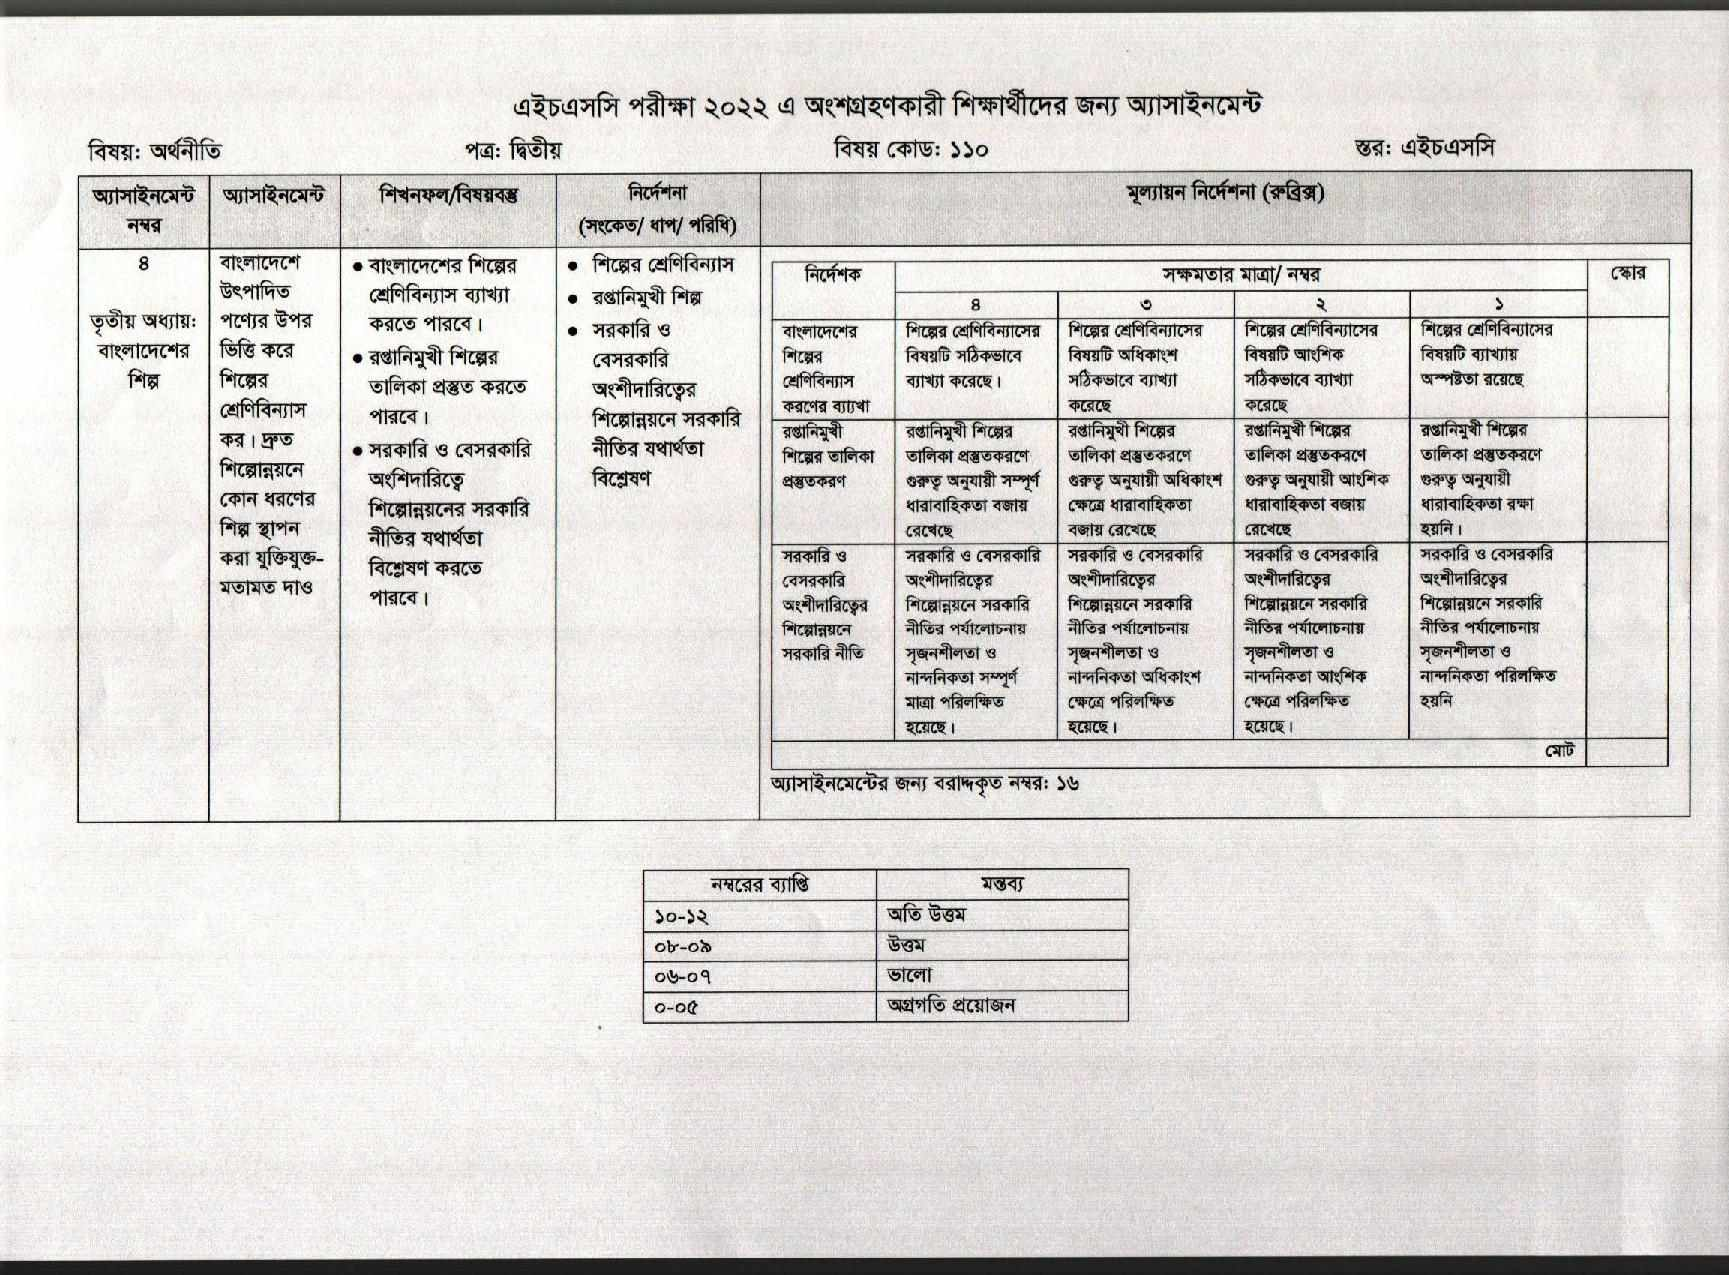 HSC Assignment 2022 All Subject 7th Week